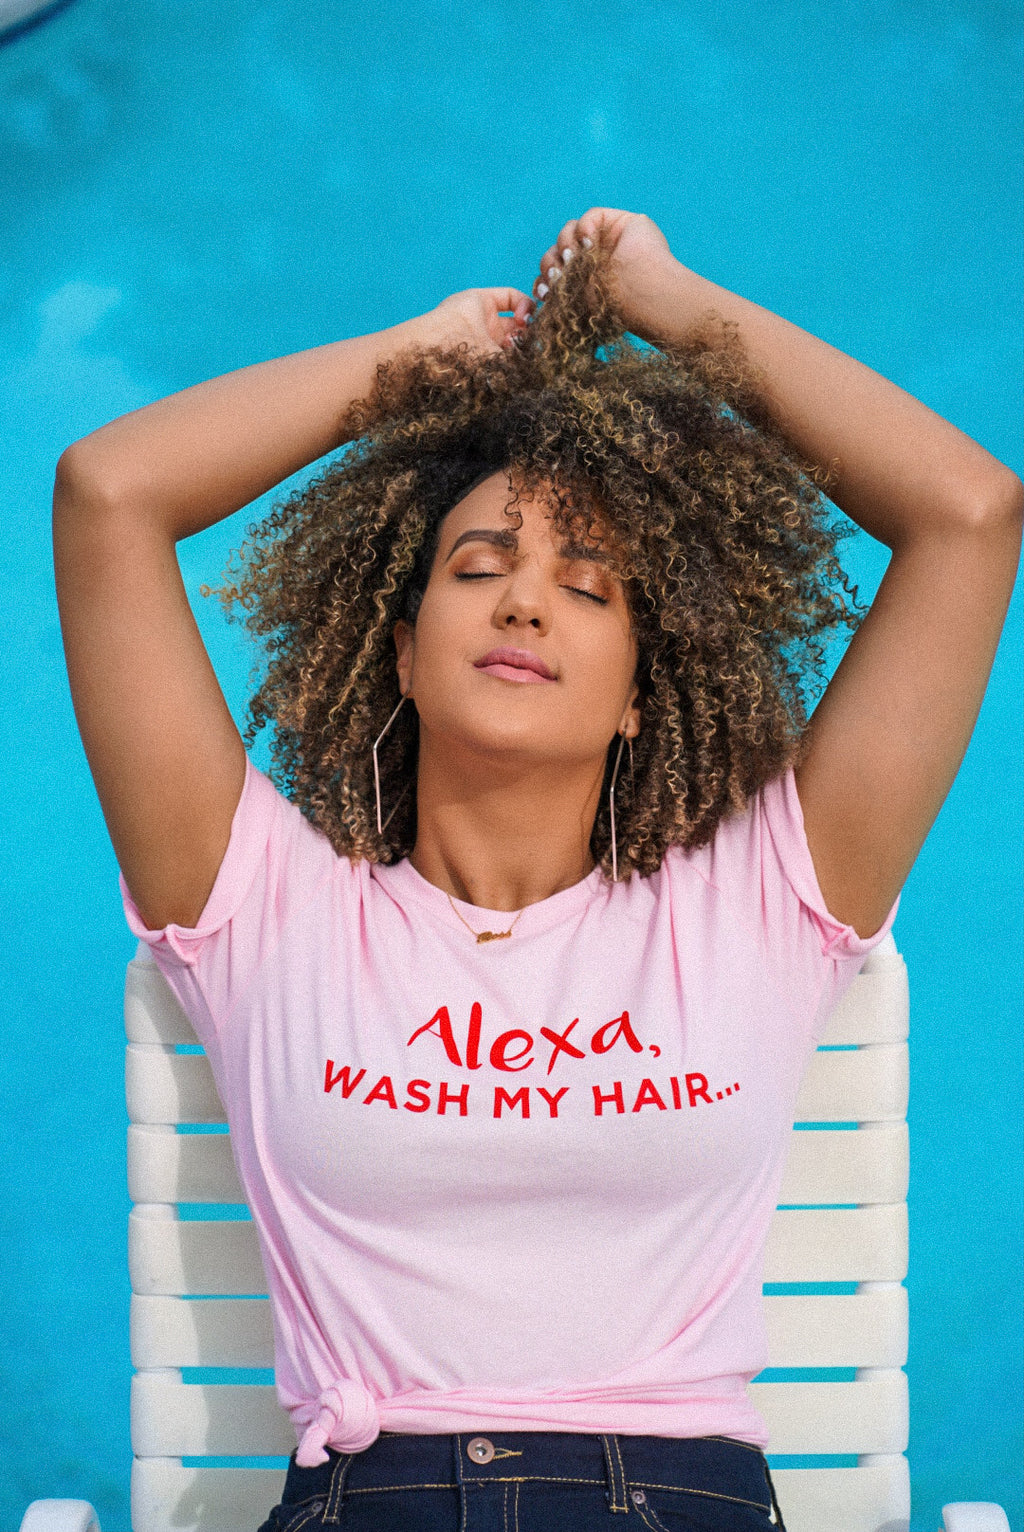 """Alexa, Wash My Hair"" T-shirt"